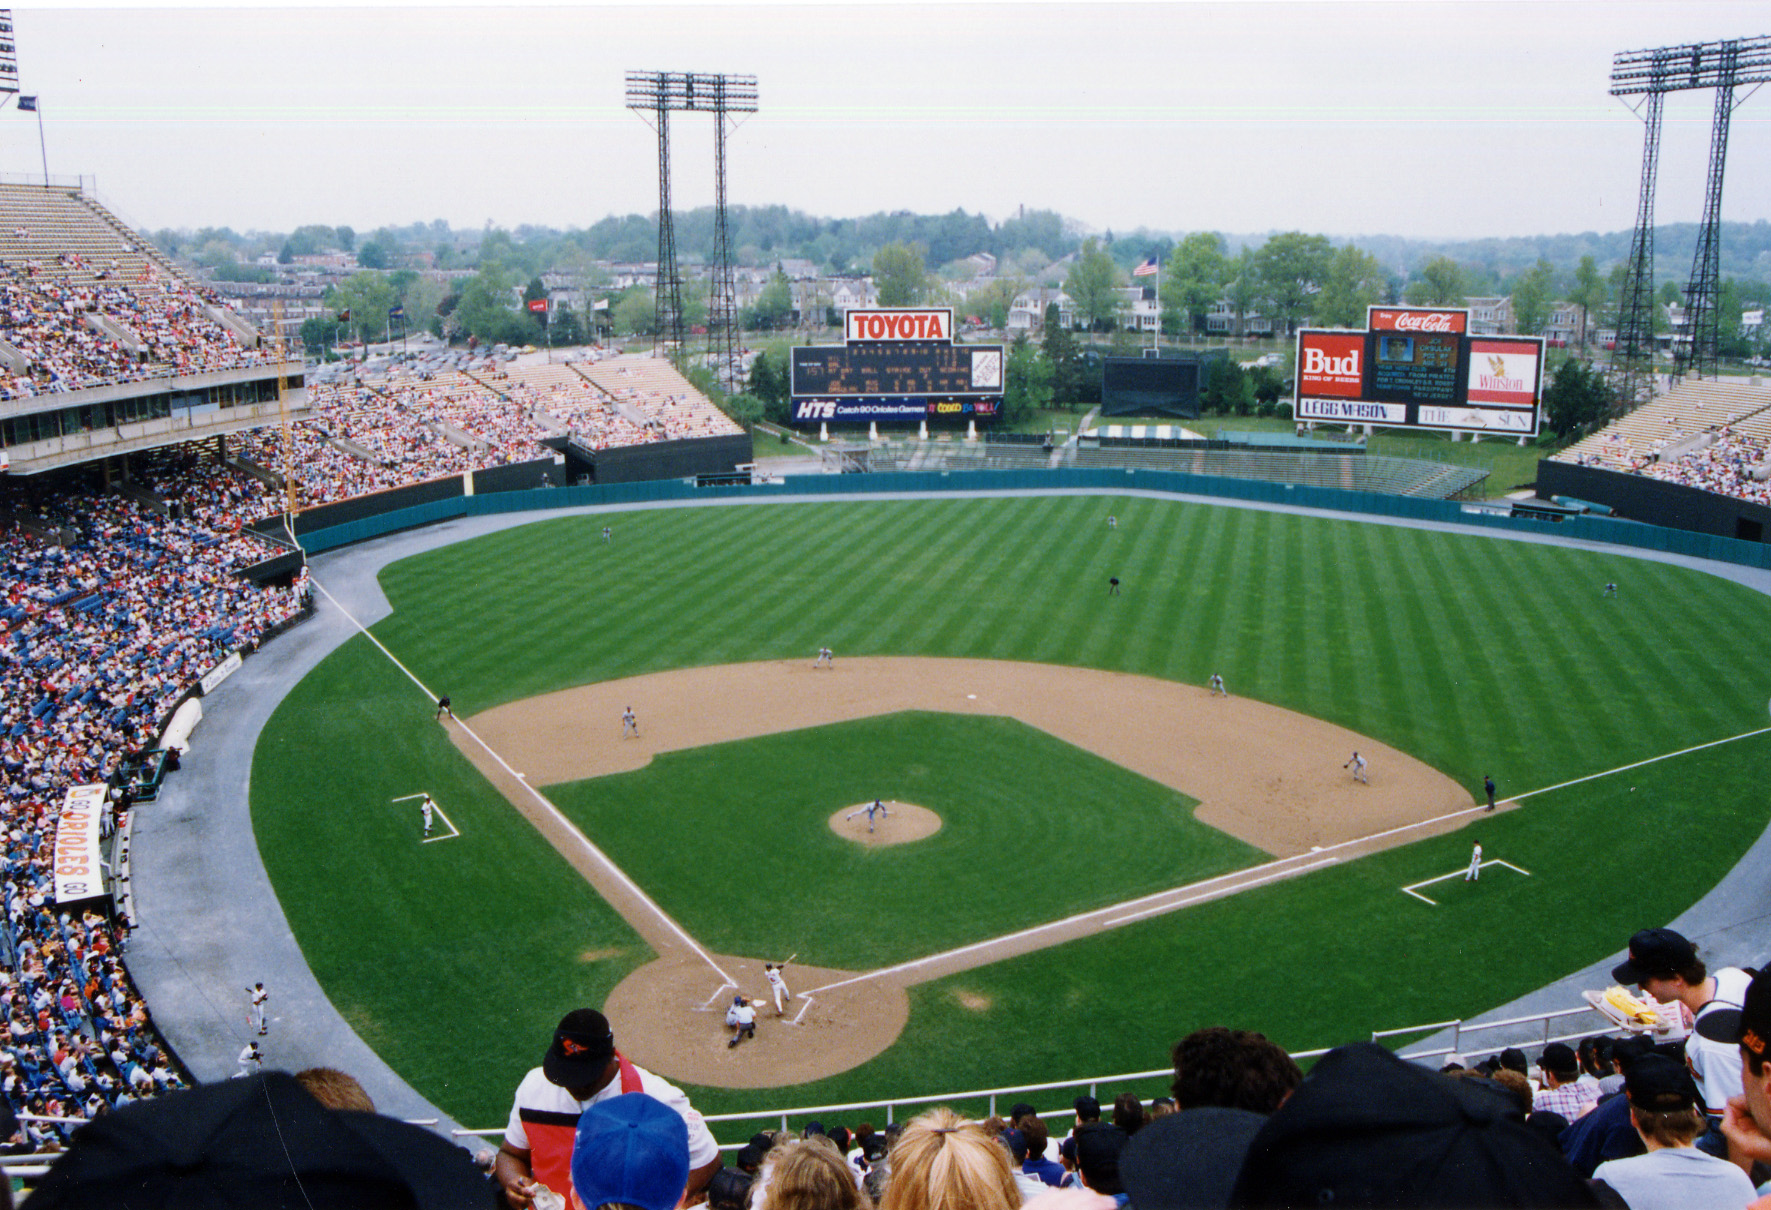 Baltimore_Memorial_Stadium_1991.jpg